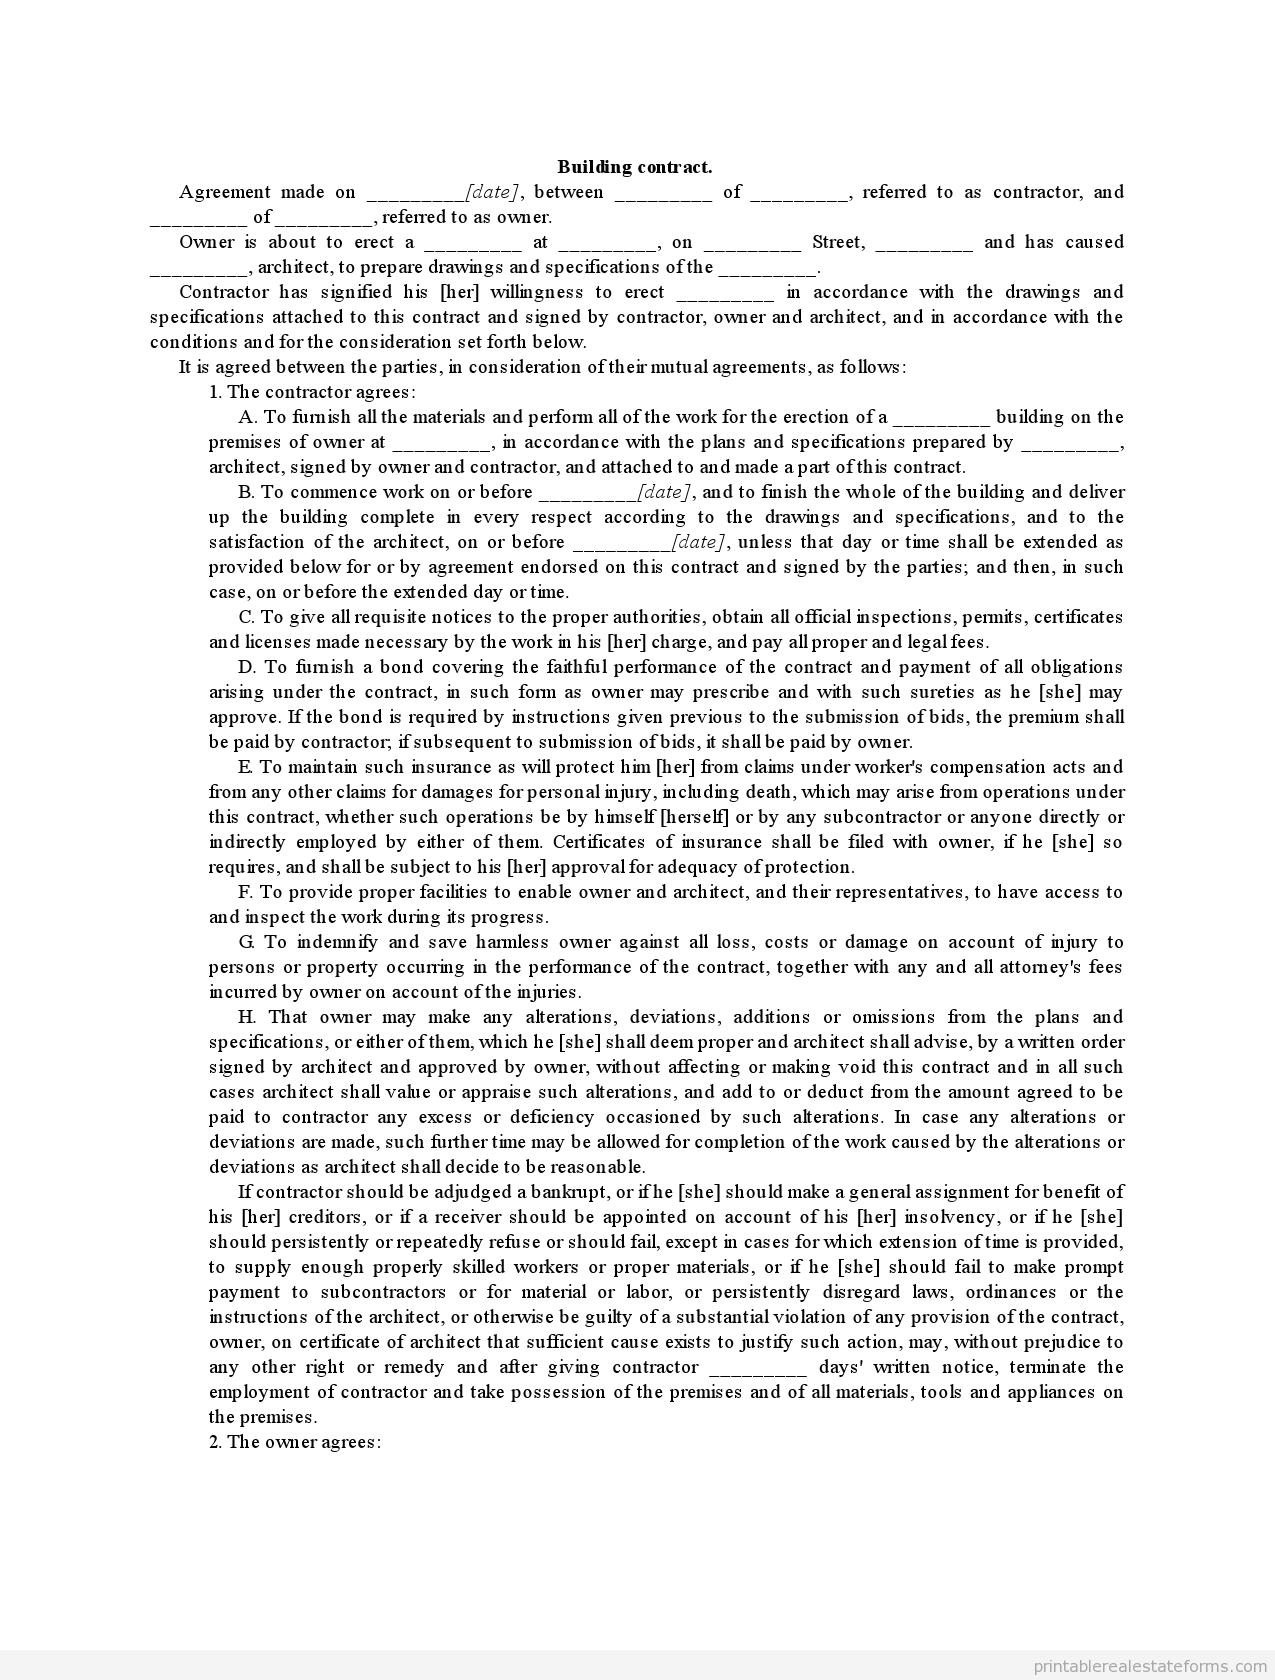 Printable Building Contract Template Sample Forms - Building contract template